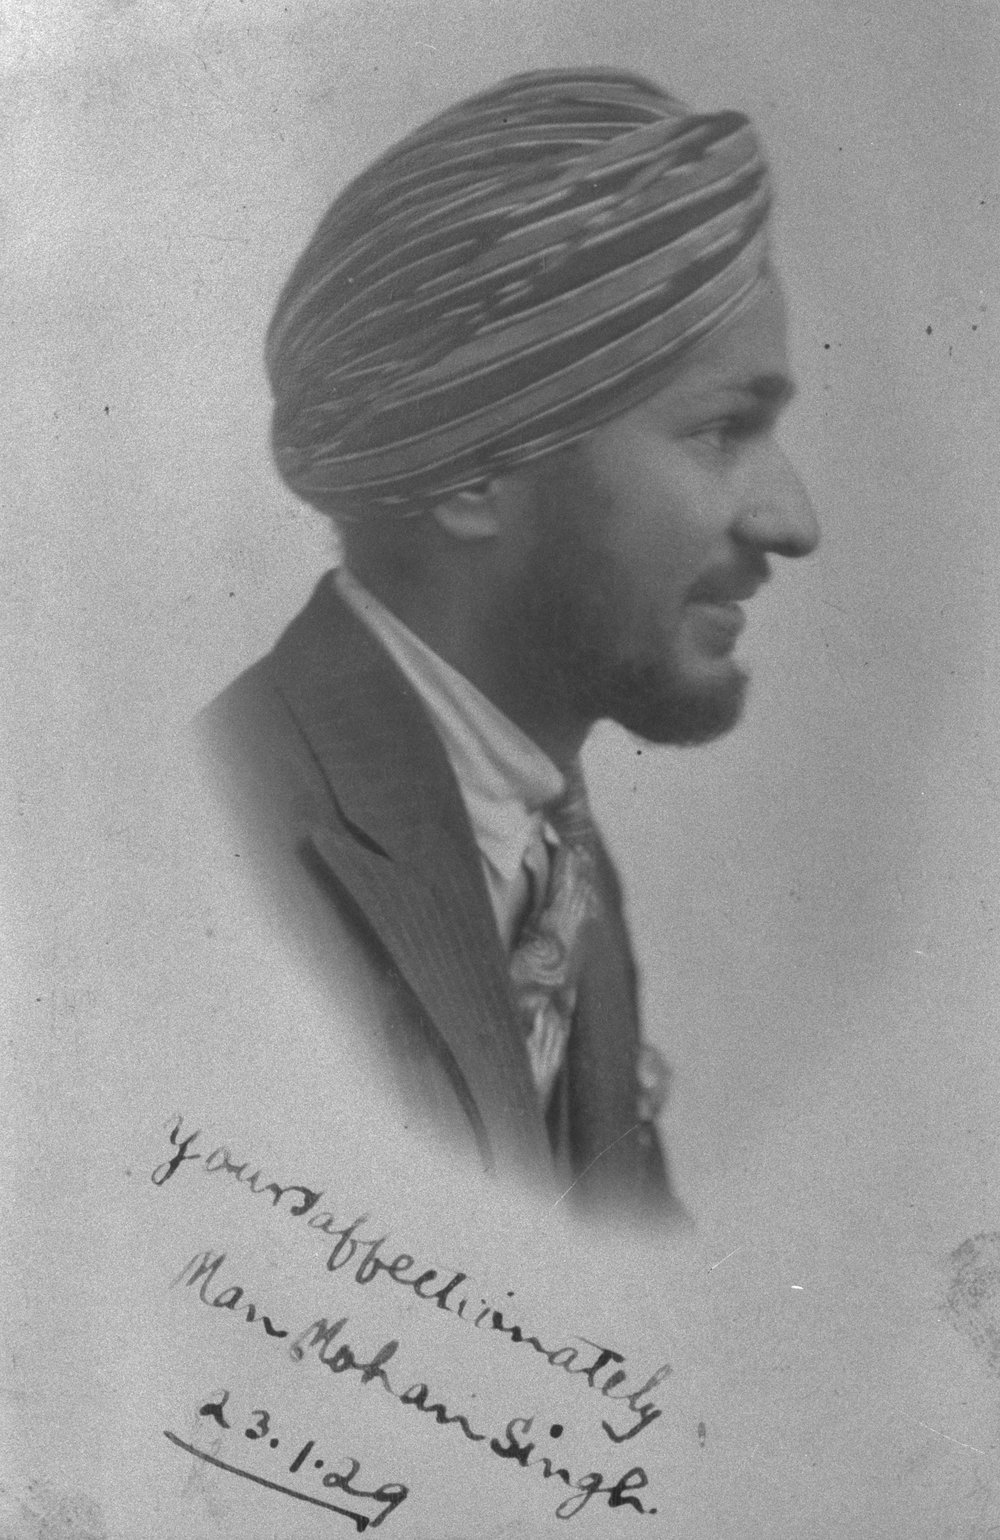 Photograph provided by Chan S Chowdhry - Nephew of Manmohan Singh. Photograph taken from a family album that survived the looting of Rawalpindi during the partition of  Punjab in 1947.